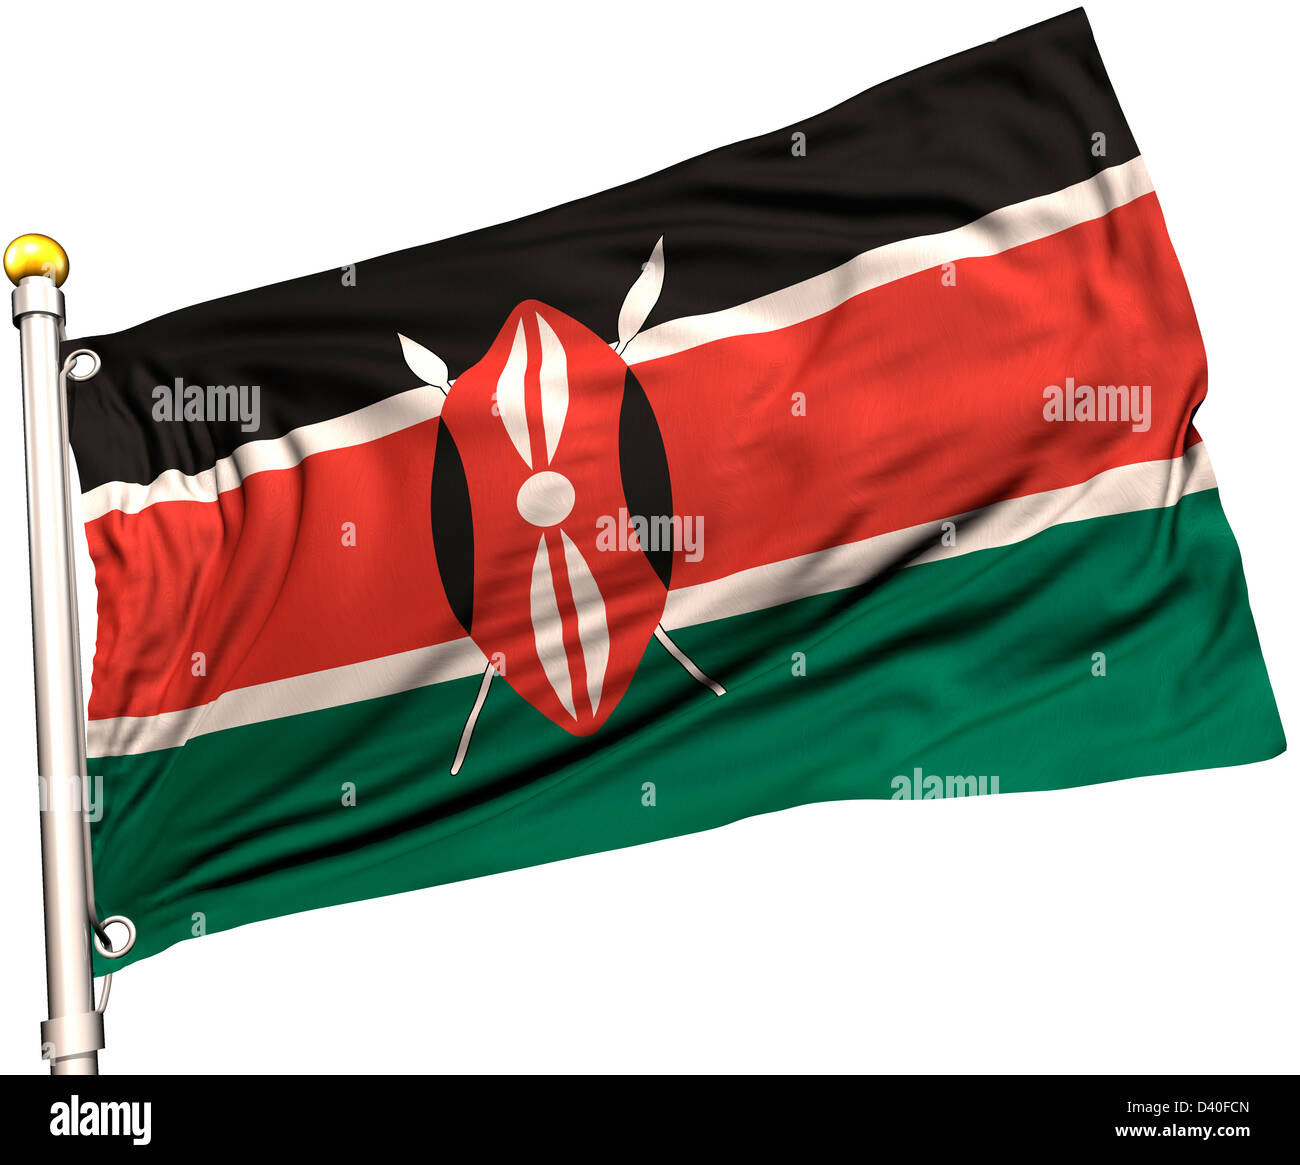 Kenya flag on a flag pole. Clipping path included. Silk texture visible on the flag at 100%. Stock Photo